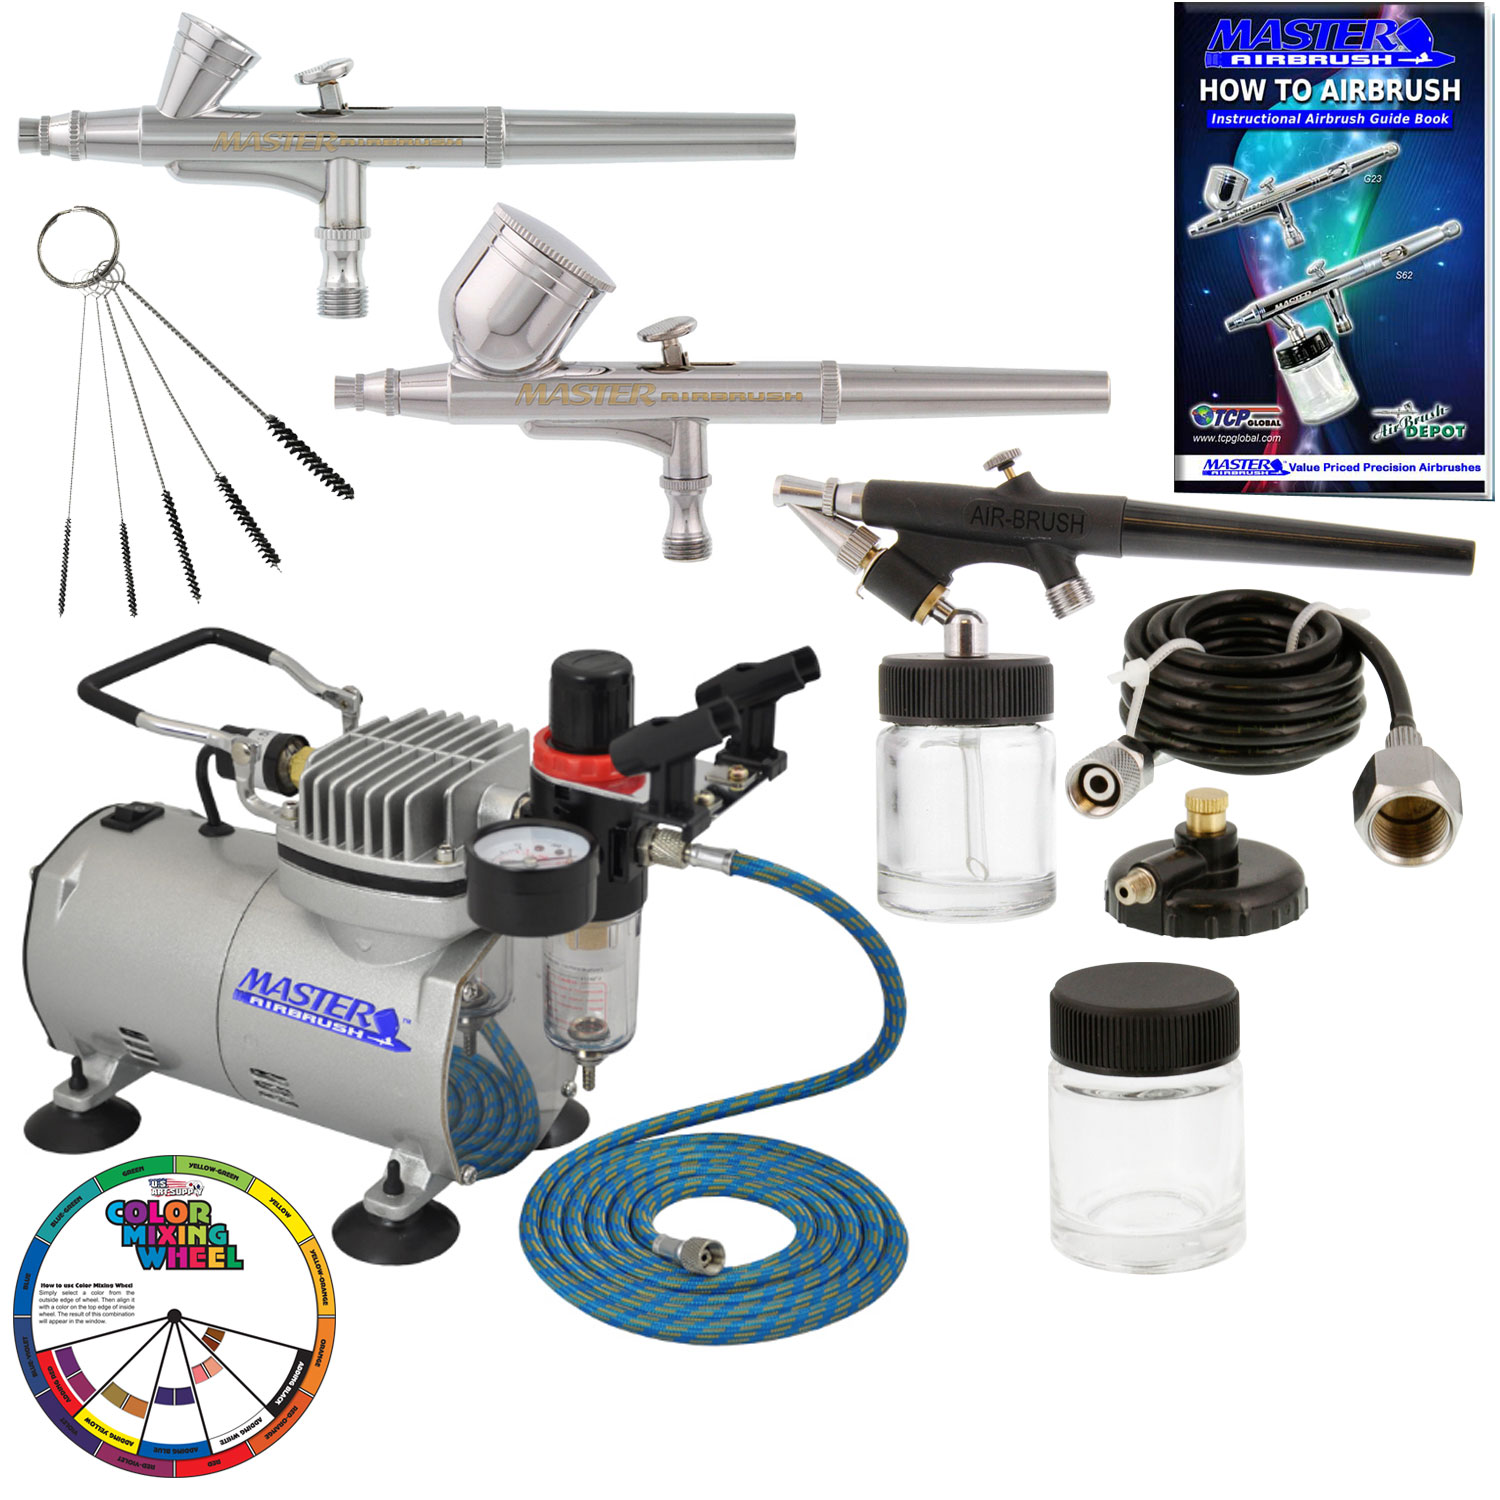 Details about 3 Master Airbrush Pro Air Compressor Kit, Hobby, Auto, Cake,  Tattoo Art Paint